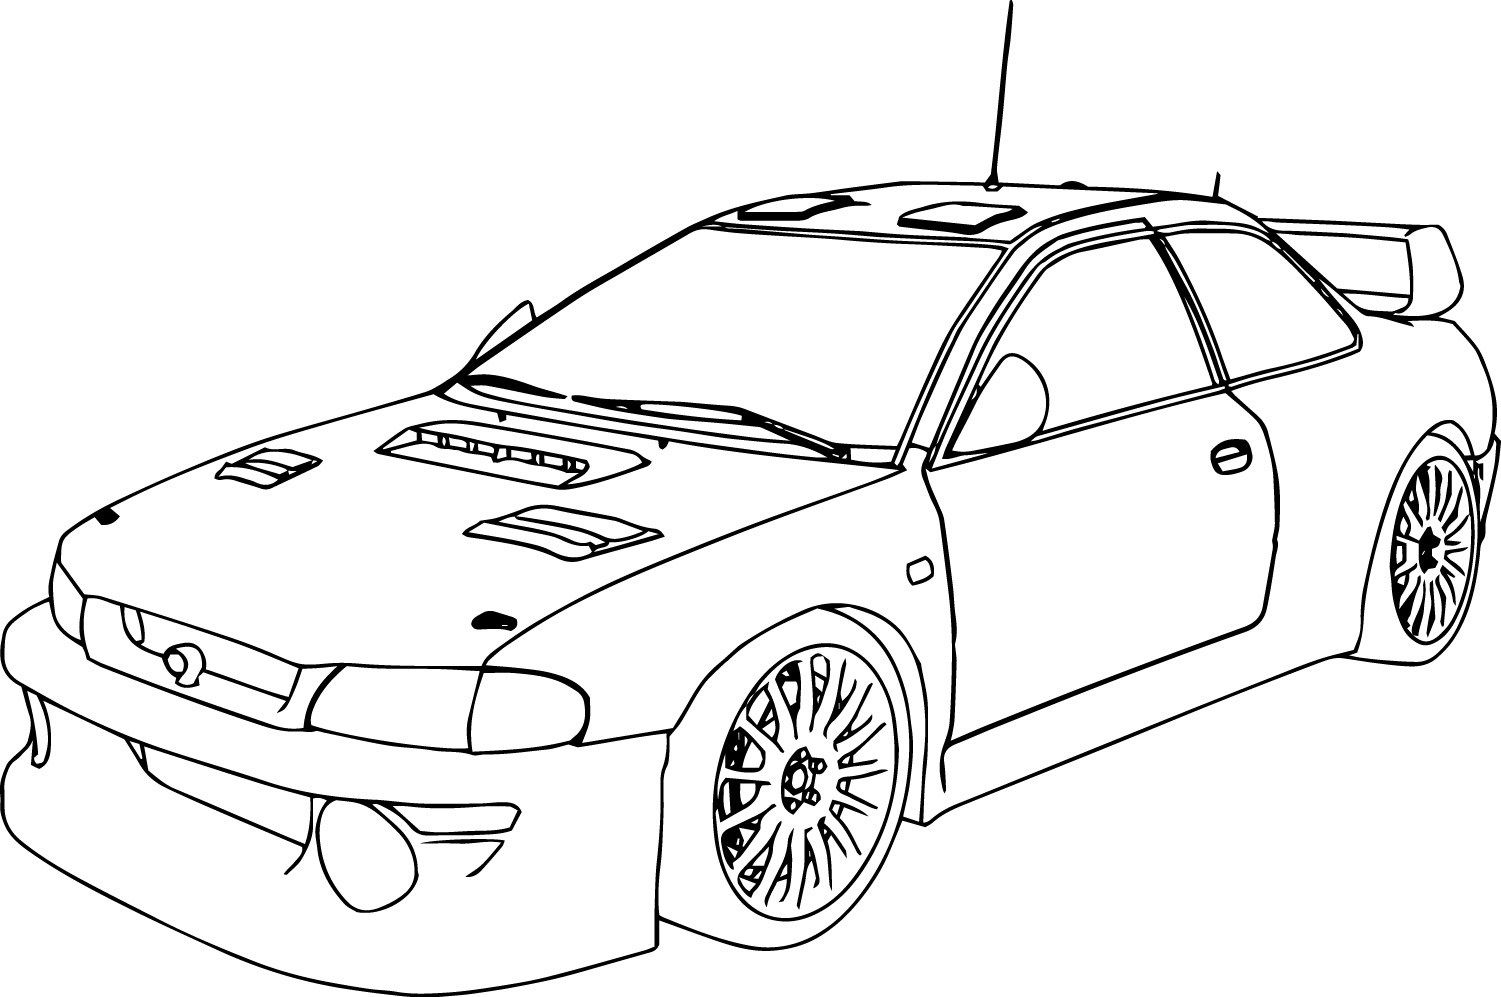 coloring pages car color in your favorit cars coloring page with some bright car pages coloring